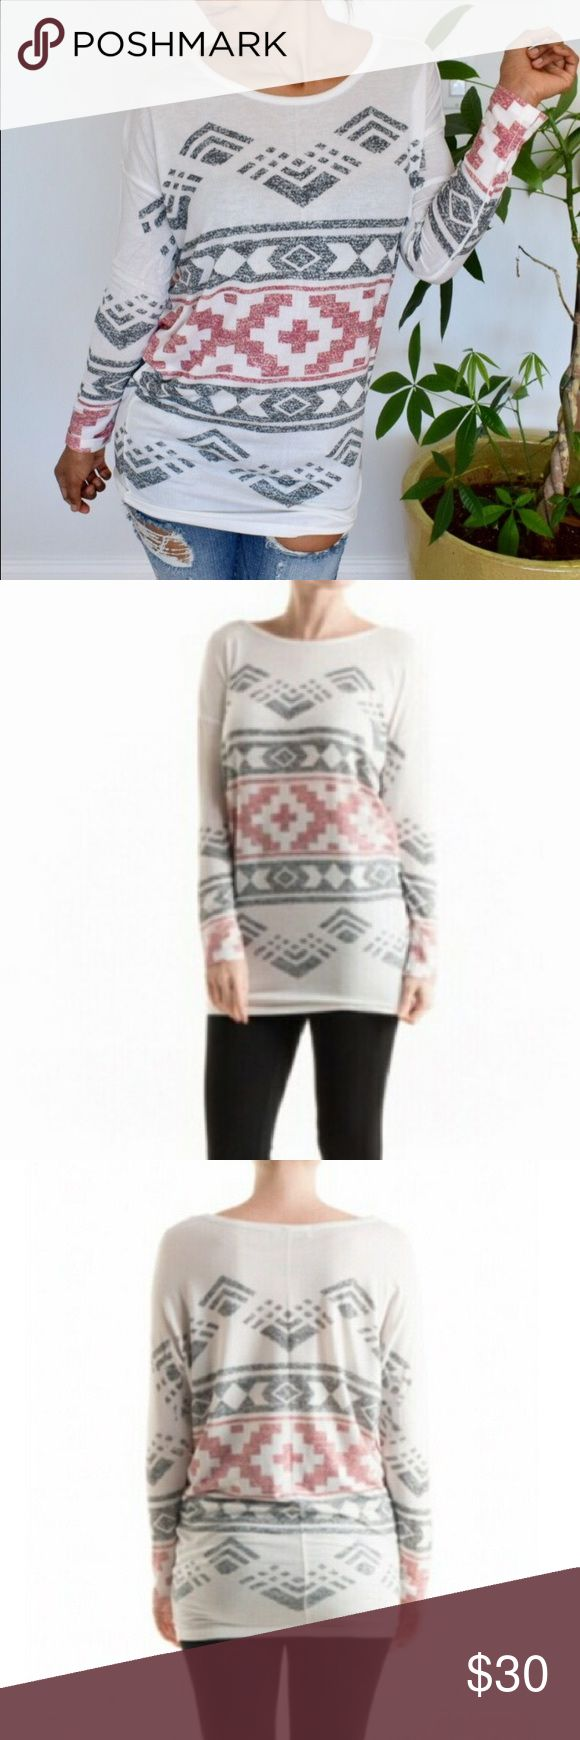 ❗️SALE❗️Aztec Sublimated Tunic 64% poly, 33% rayon, 3% spandex. Cool lightweight top! Pair with jeans or leggings!! Tops Tees - Long Sleeve